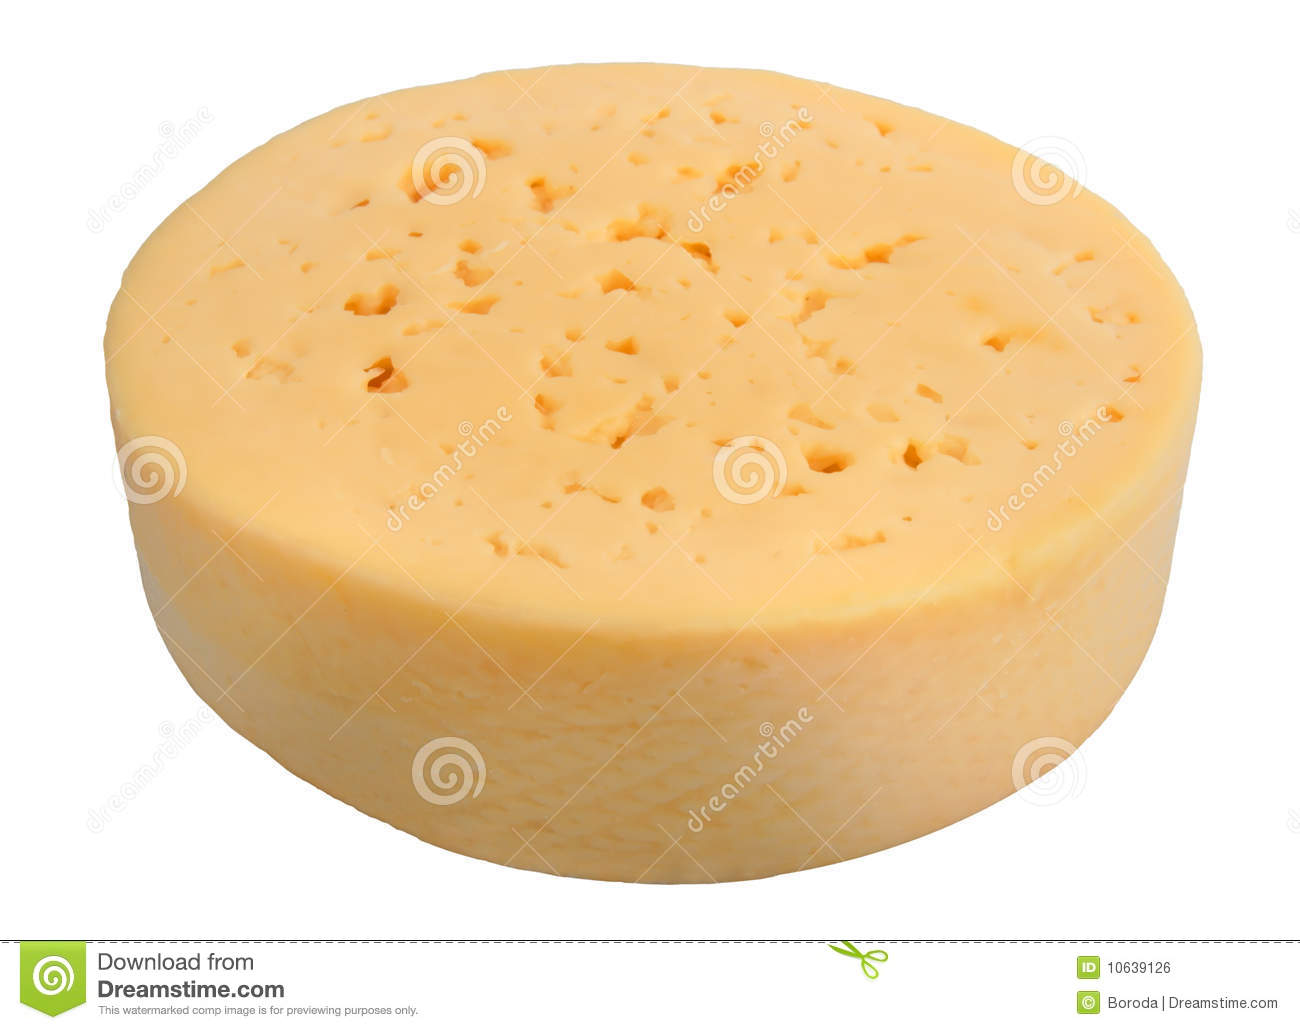 Yellow Cheese Of Circle Form Royalty Free Stock Image